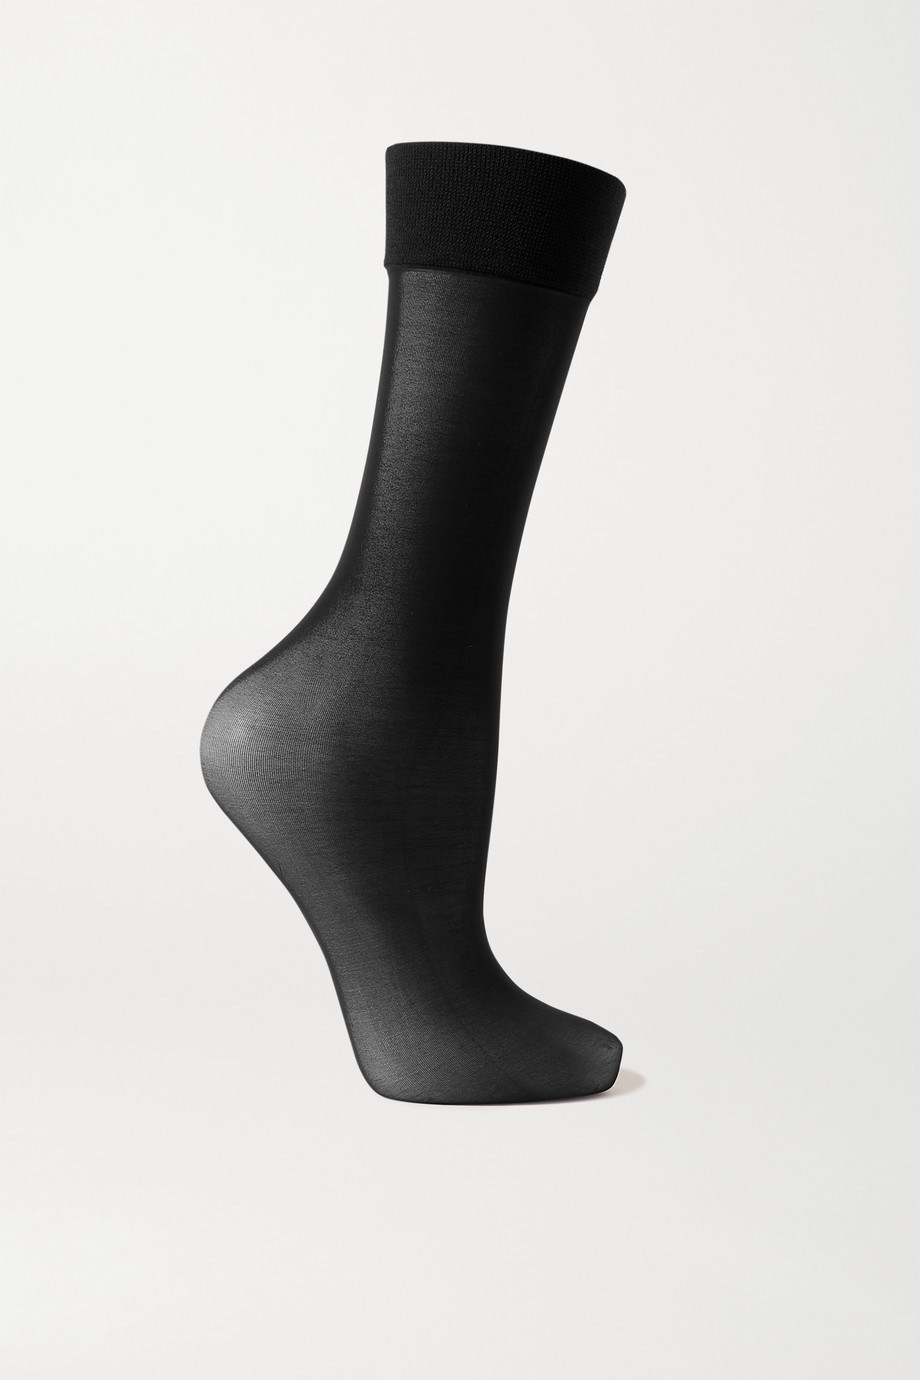 Dries Van Noten 30 denier socks